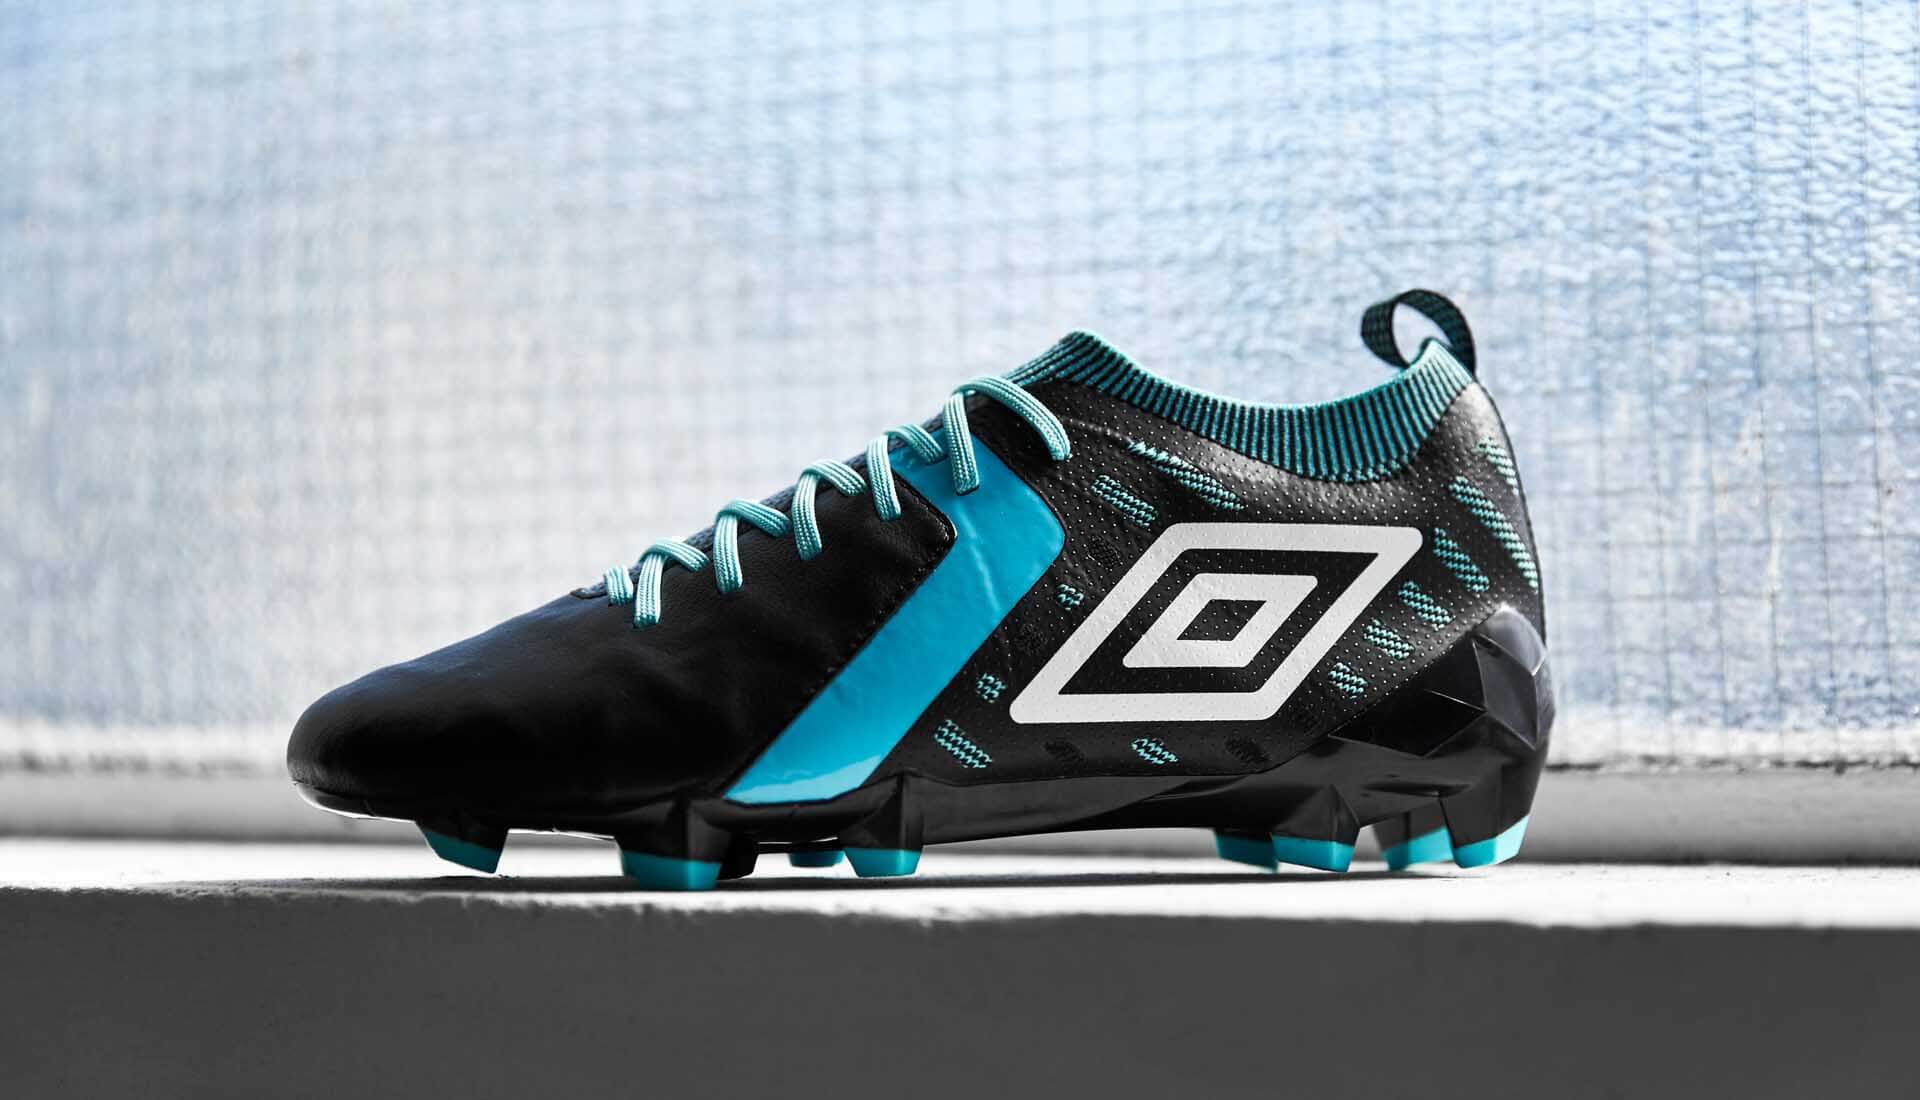 0169f879c Umbro Launch Bluefish Football Boots Collection - SoccerBible